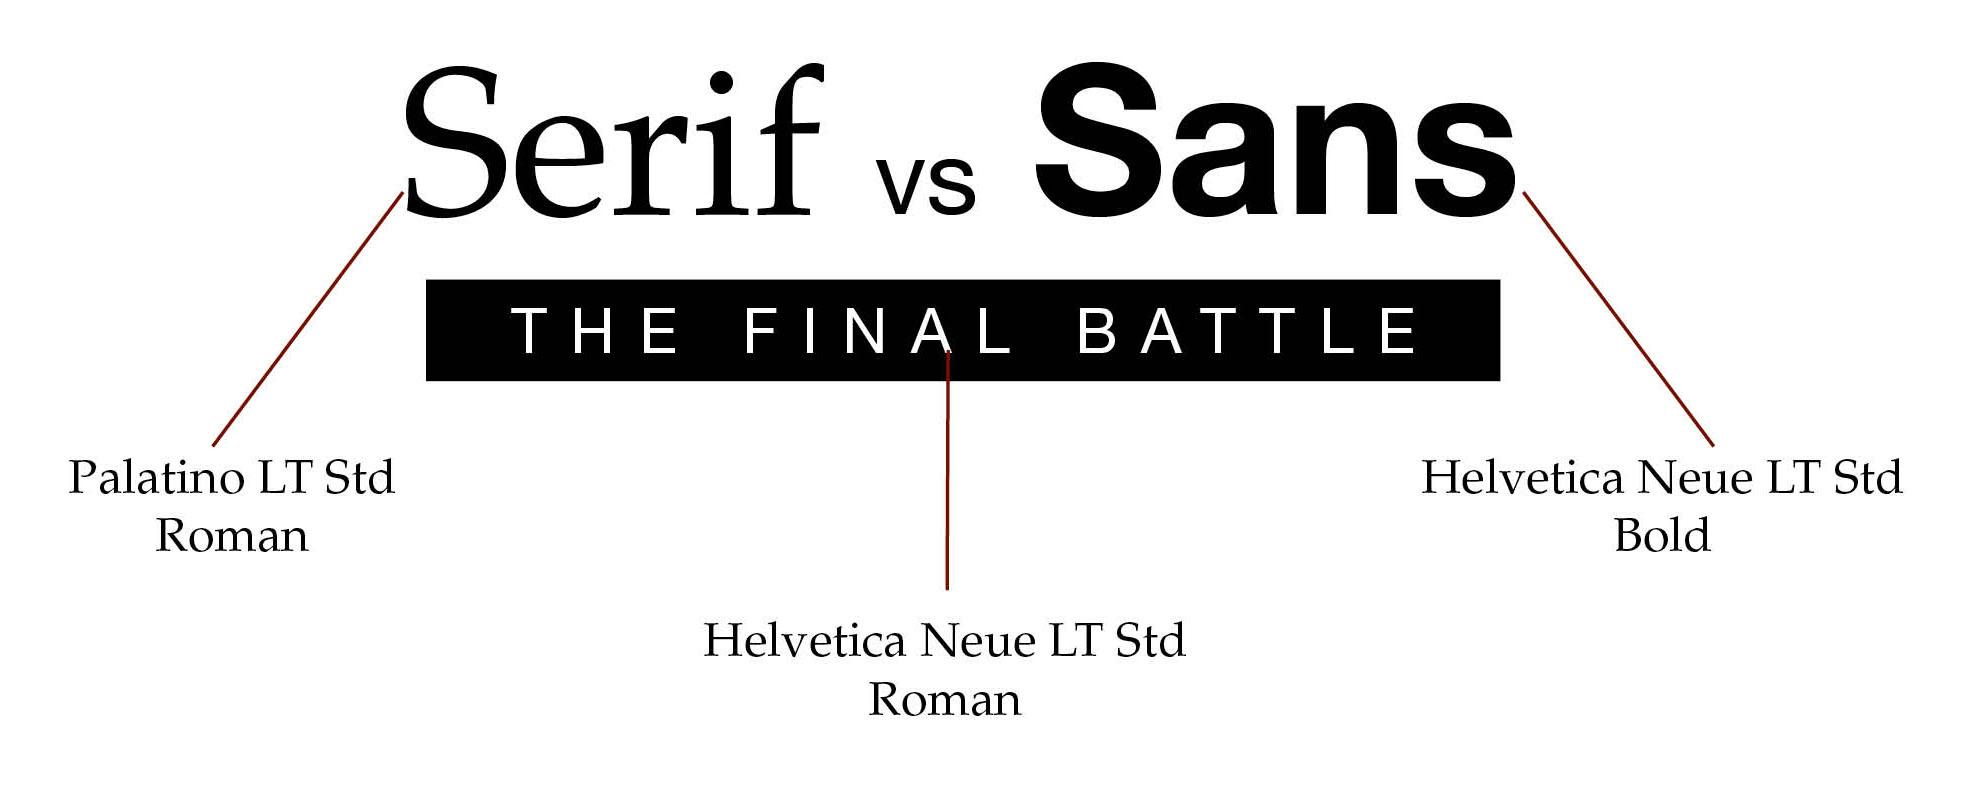 Serif vs. sans typefaces, comparing different typeface styles